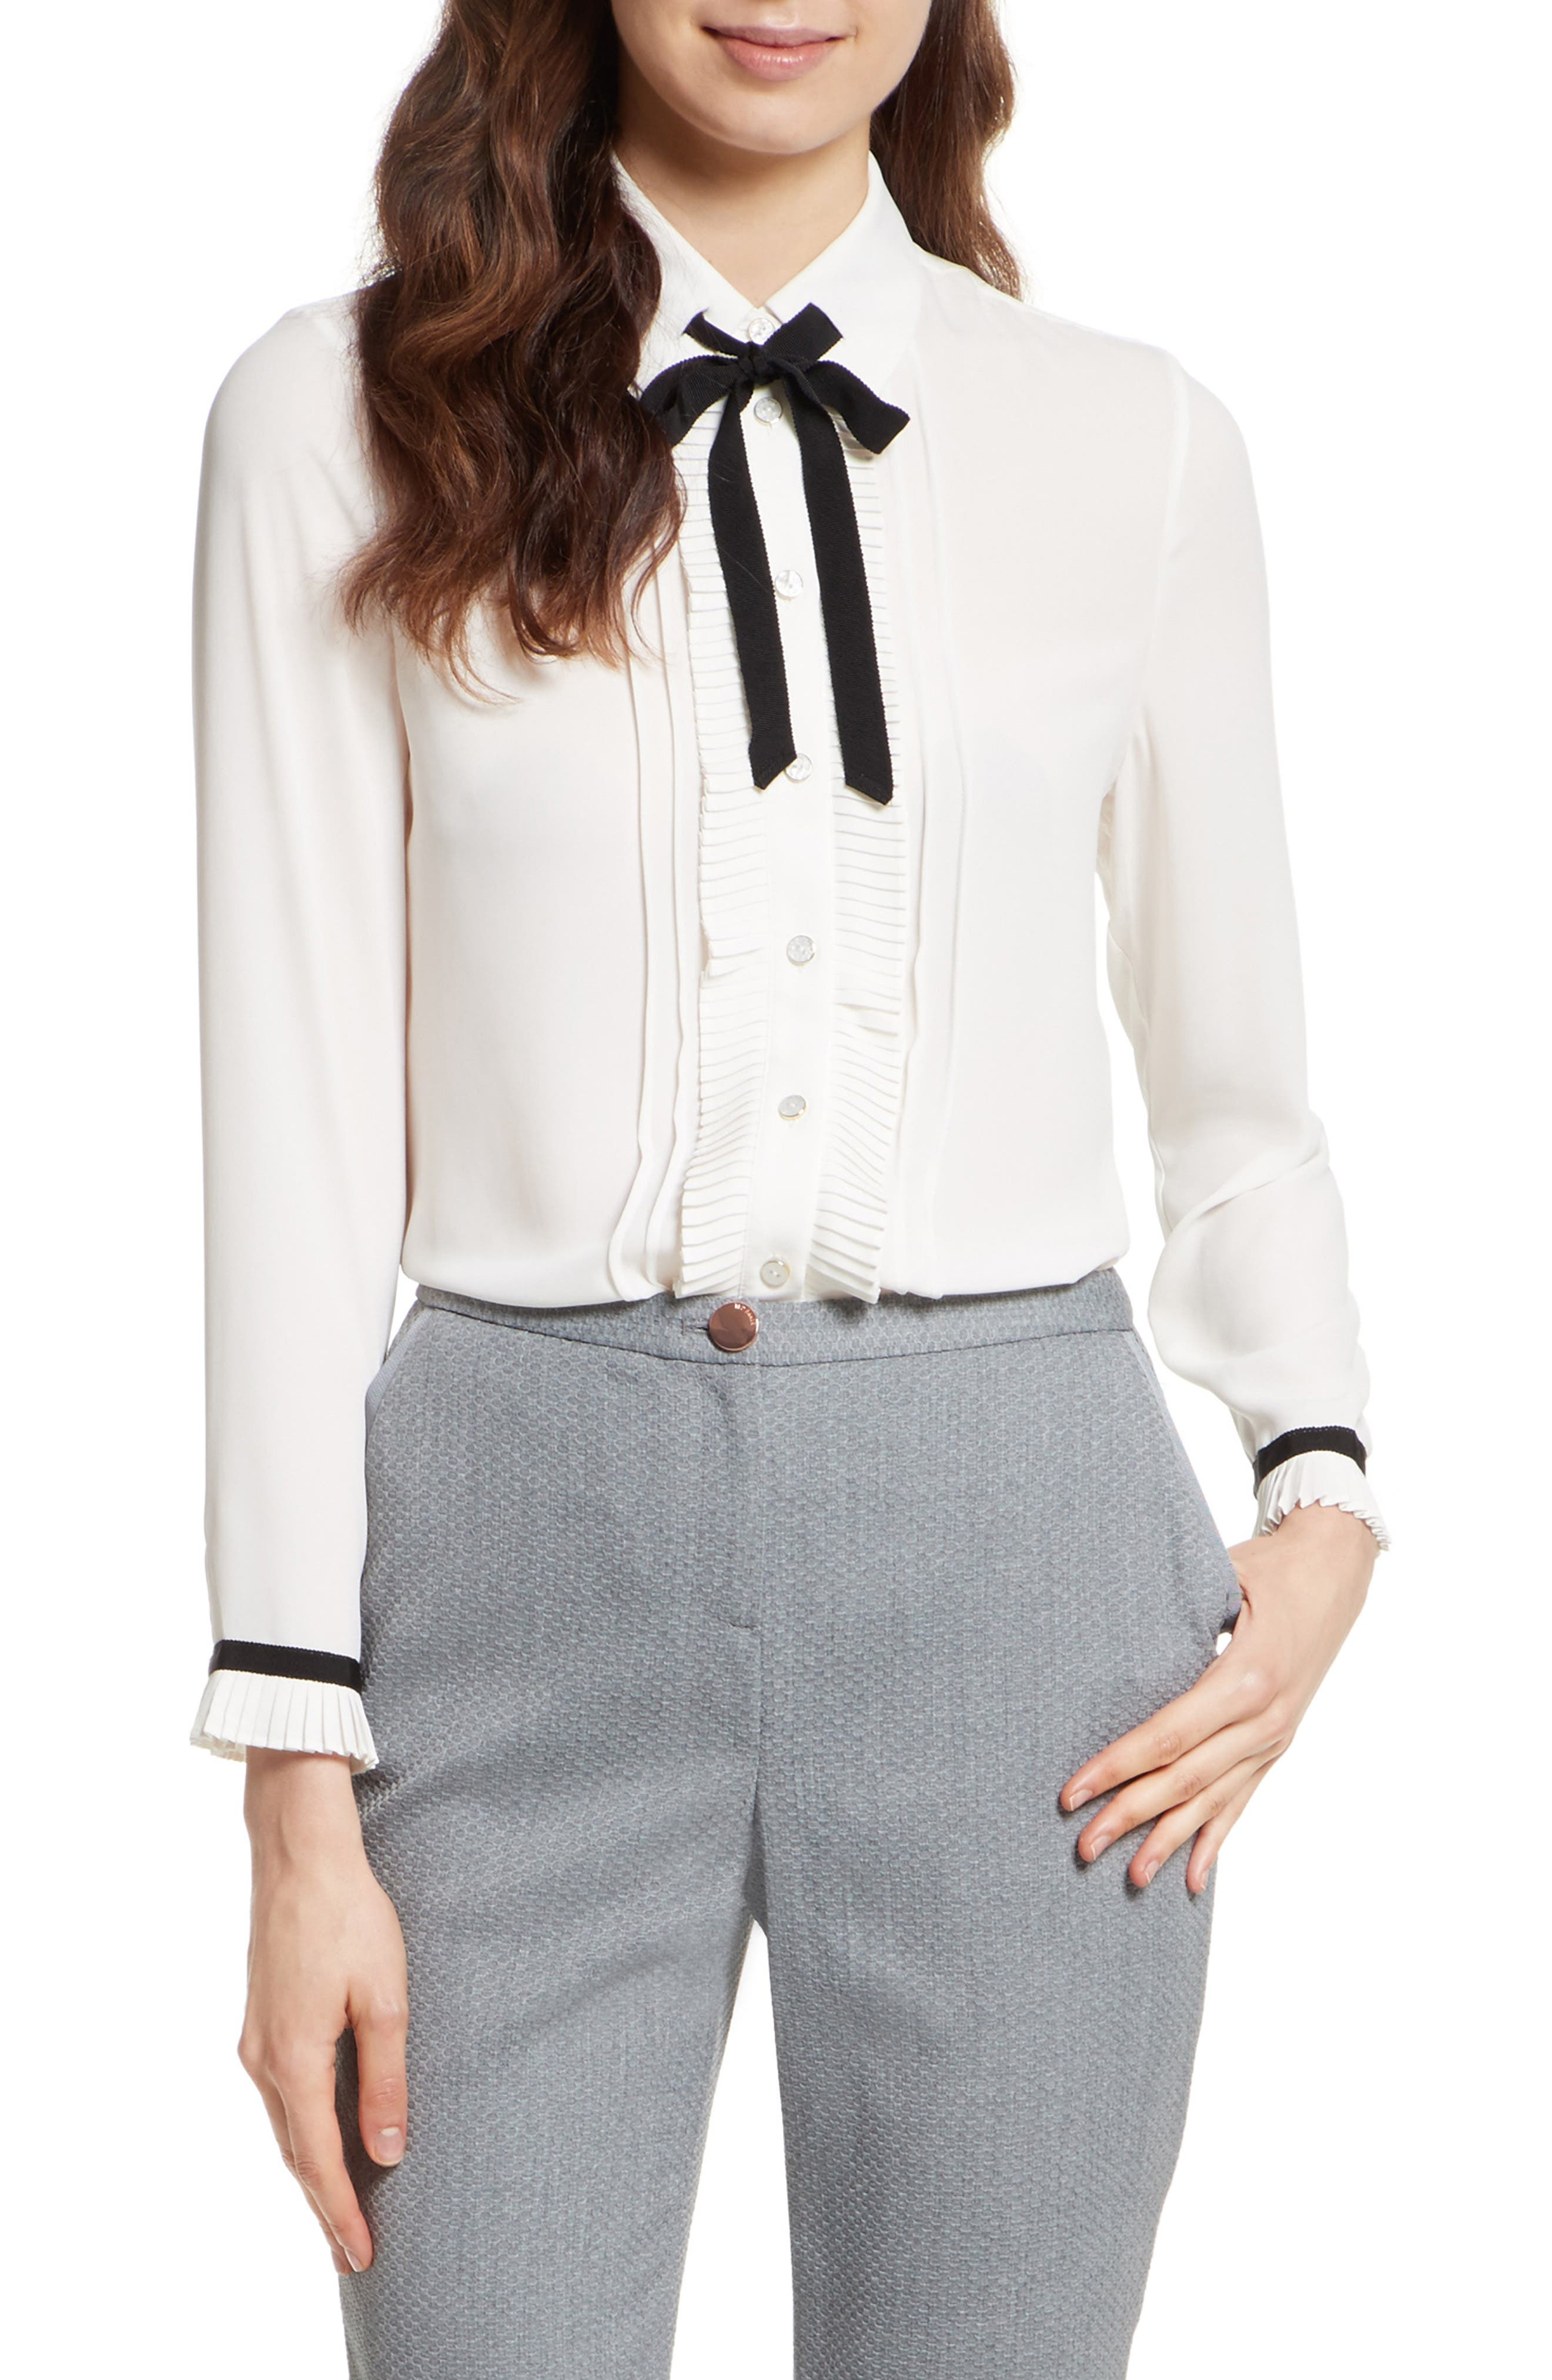 Main Image - Ted Baker London Pleated Frill Tie Neck Shirt